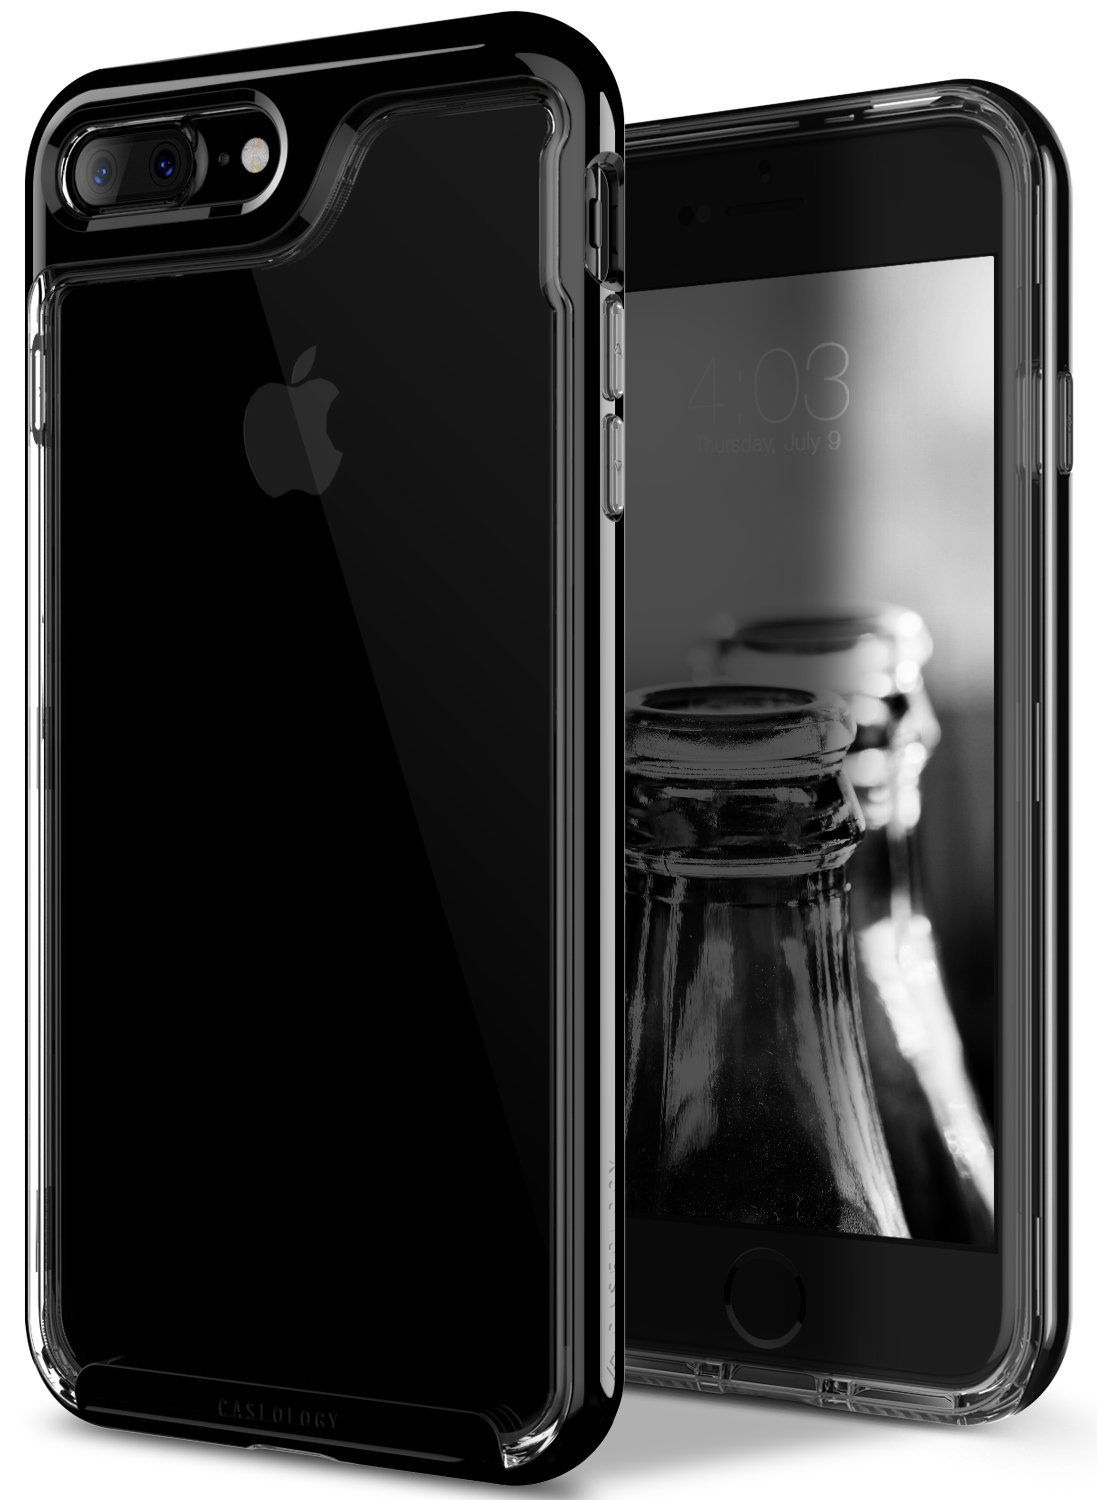 iphone 7 jet black senza custodia